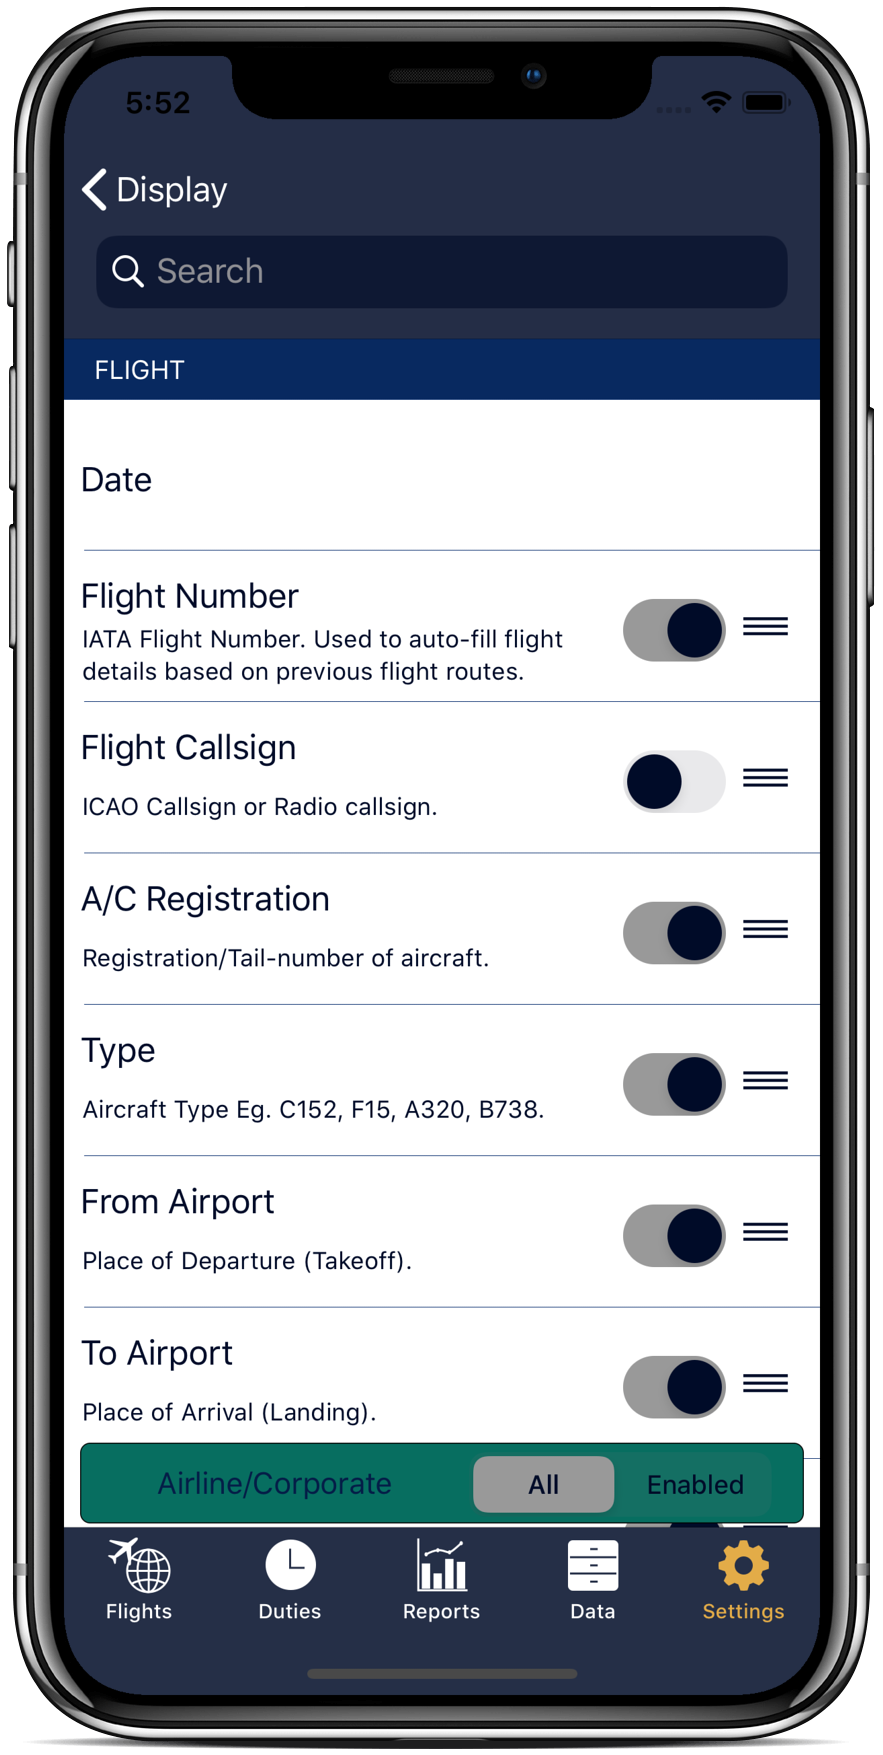 Log your flights how you want with flight page customization.